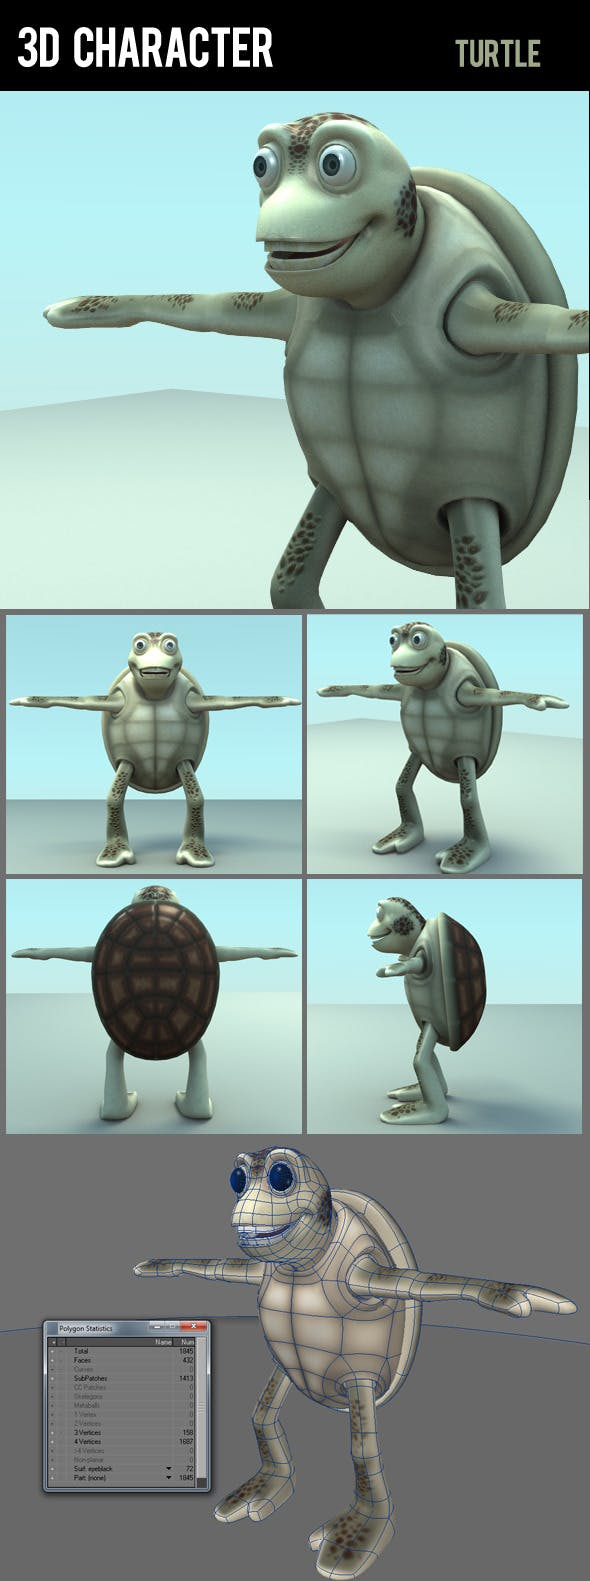 3d character turtle - 3DOcean Item for Sale